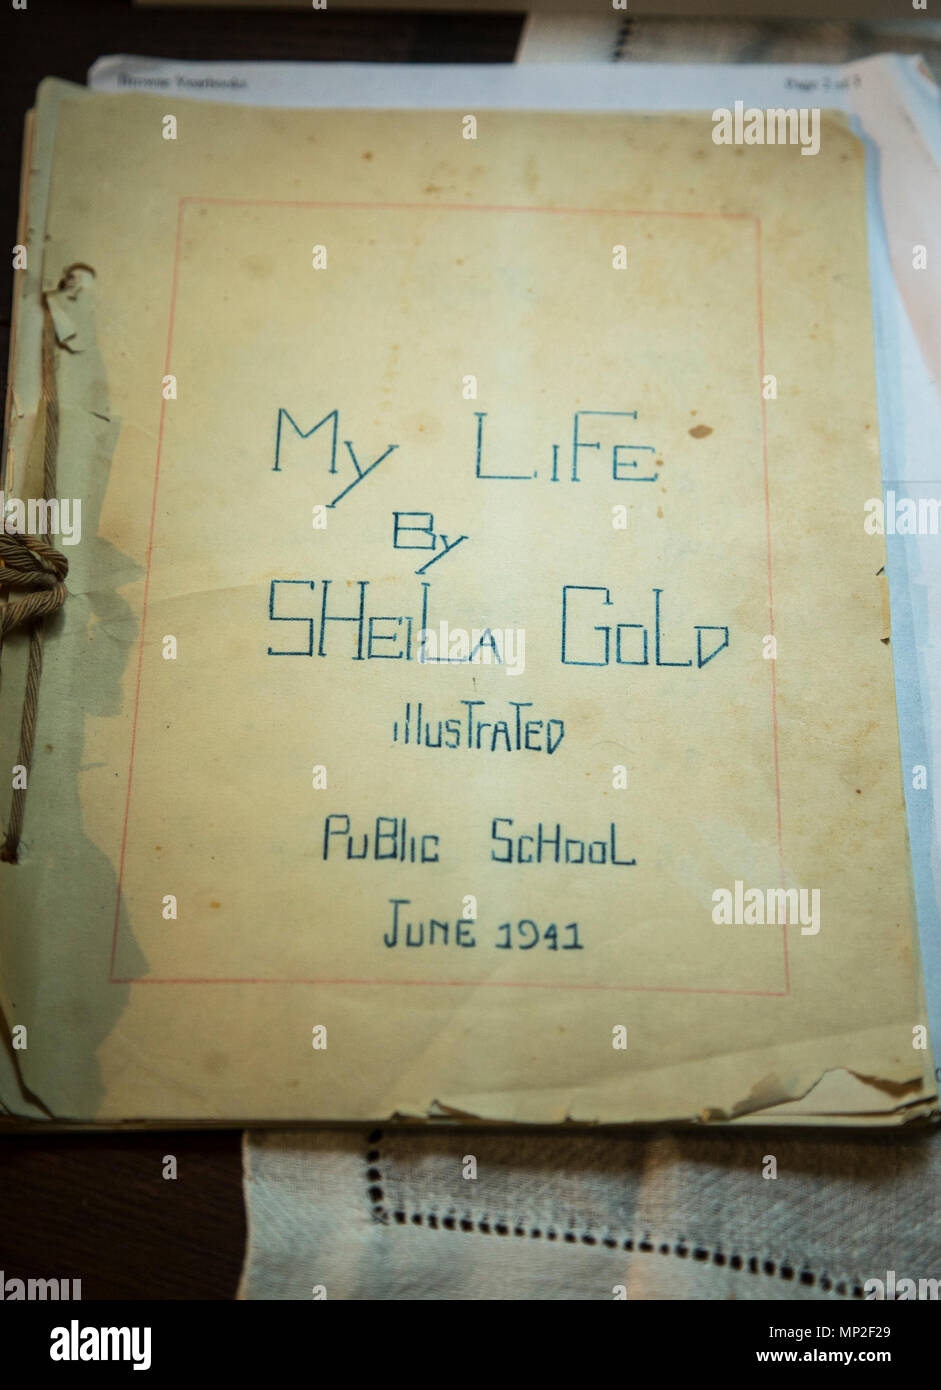 A young girl's journal written in 1941 on display at at the Hopper-Goetschius Museum in New Jersey. - Stock Image